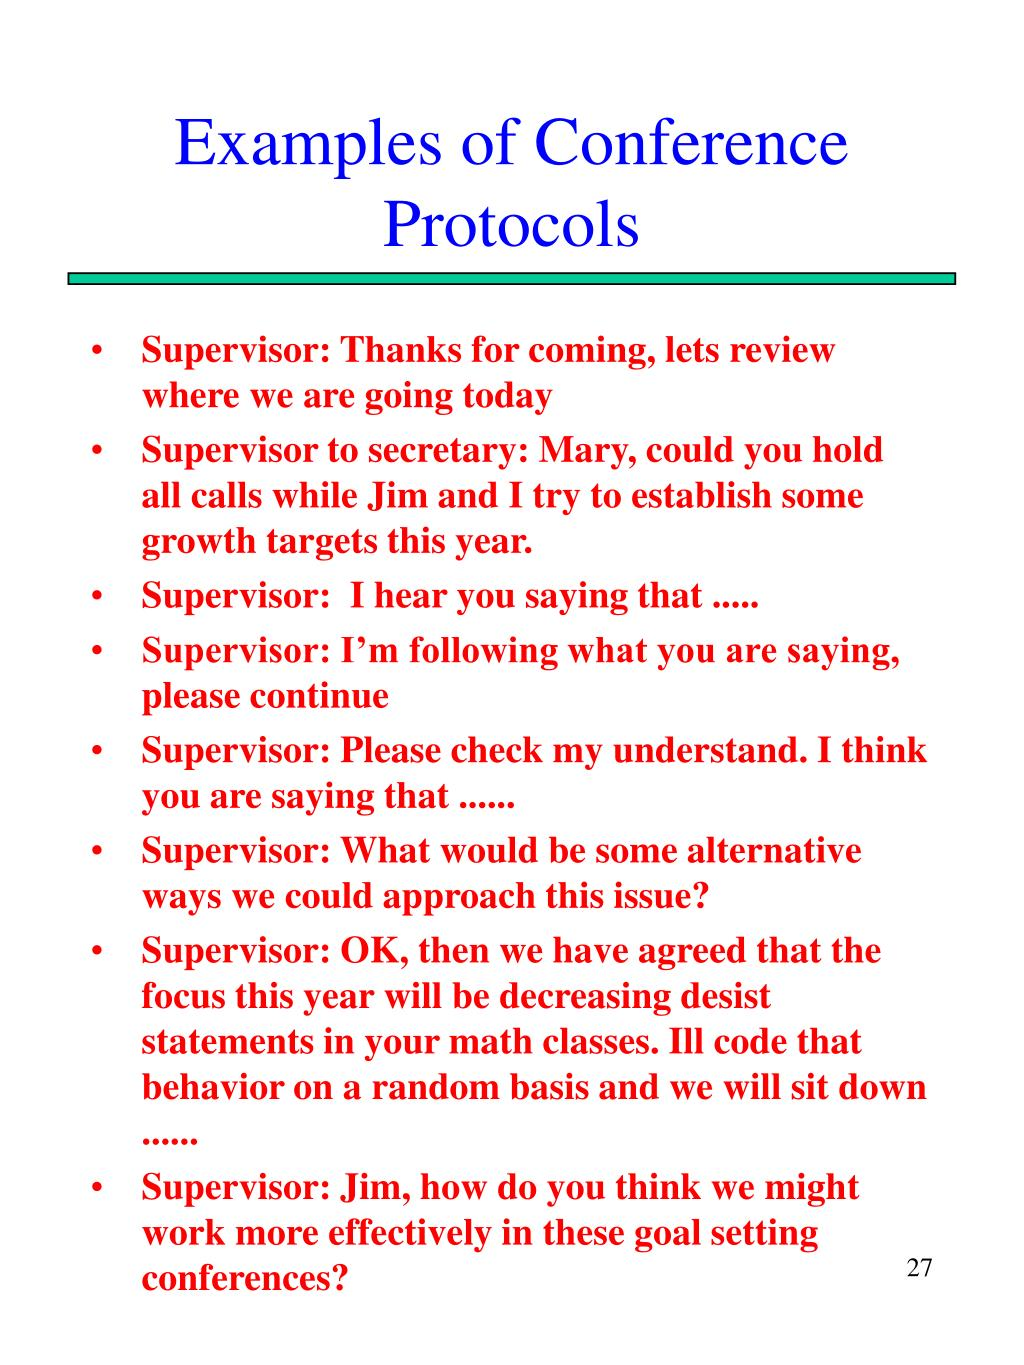 Examples of Conference Protocols